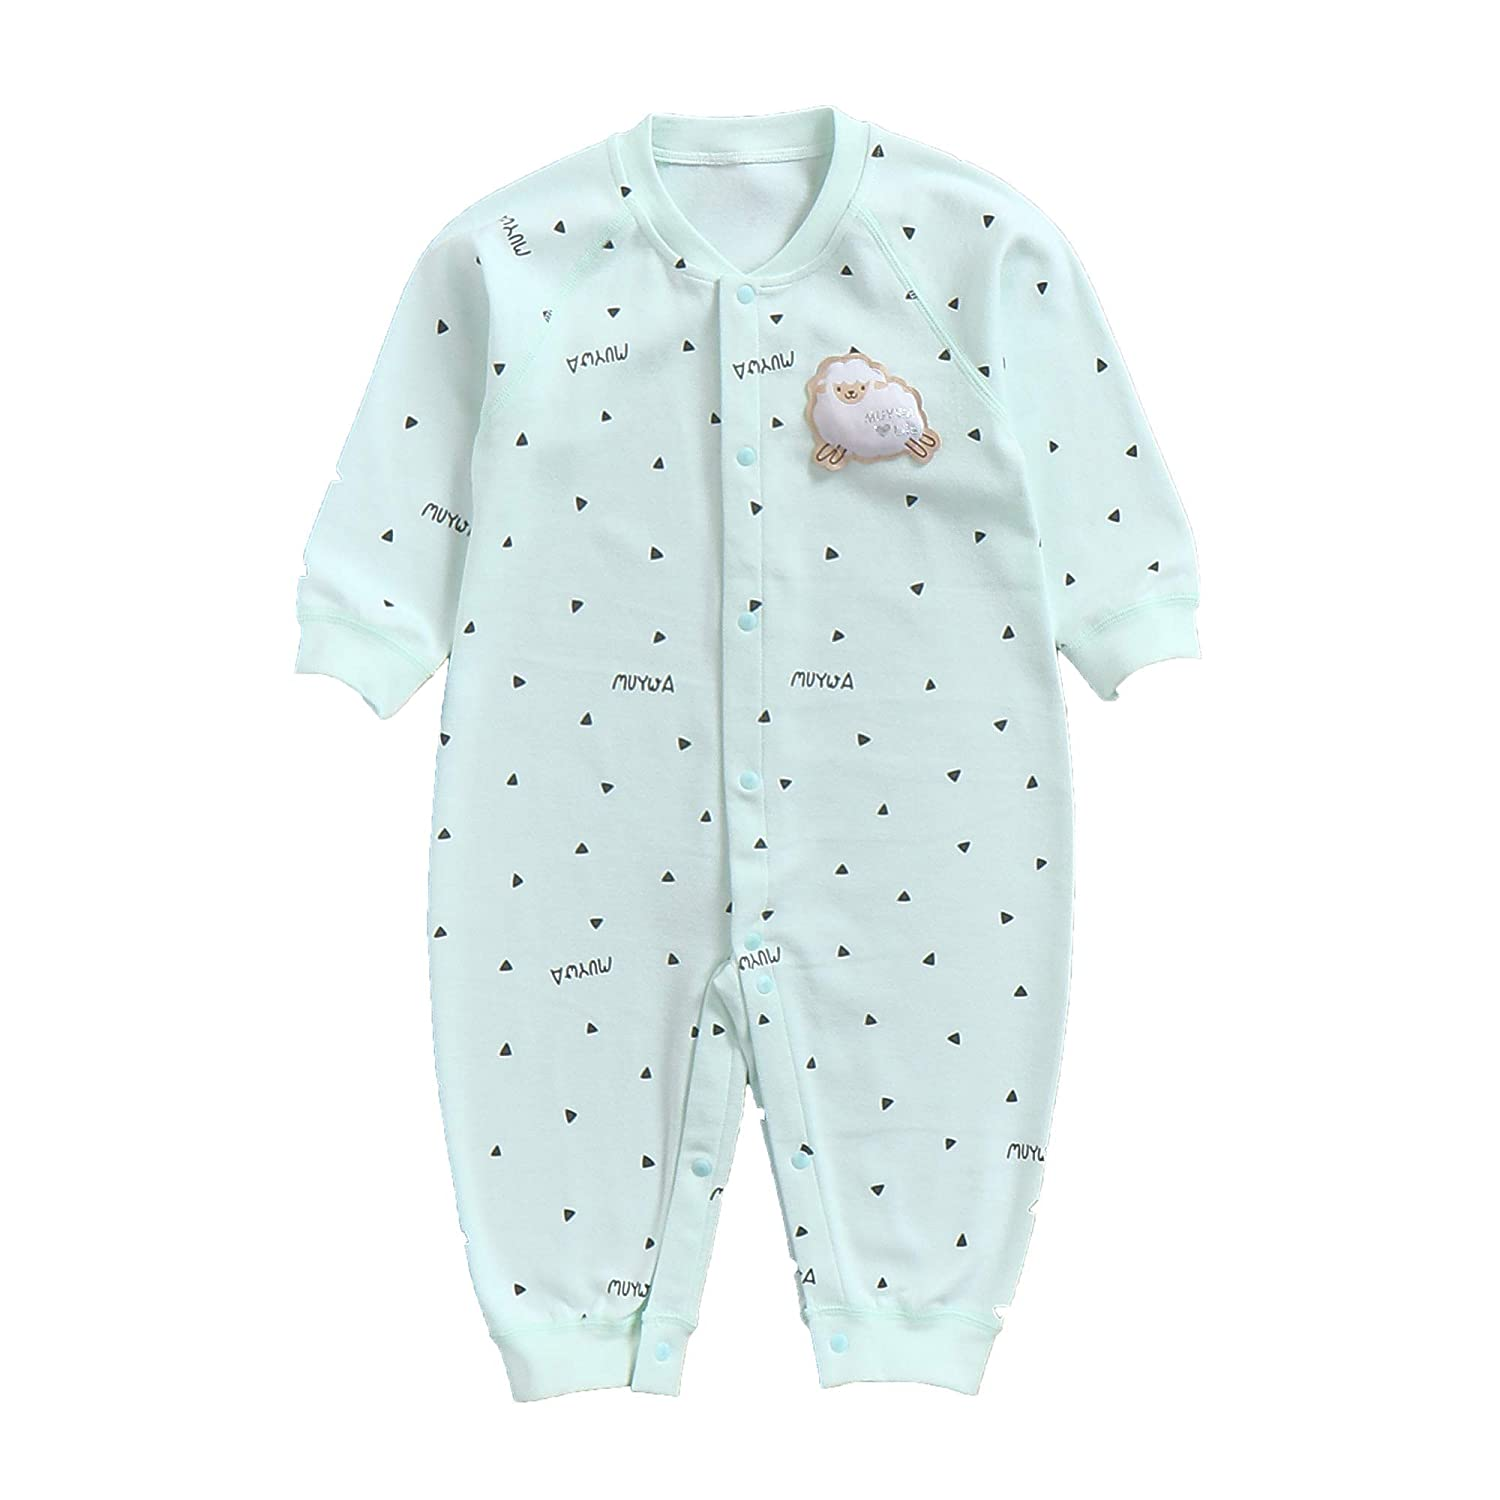 6bb093a4a83 Amazon.com  MuYwa Footless Pajamas Baby Sleeper Cotton Kids   Toddler Pjs  Snap Sleep and Play Onesies Unisex  Clothing